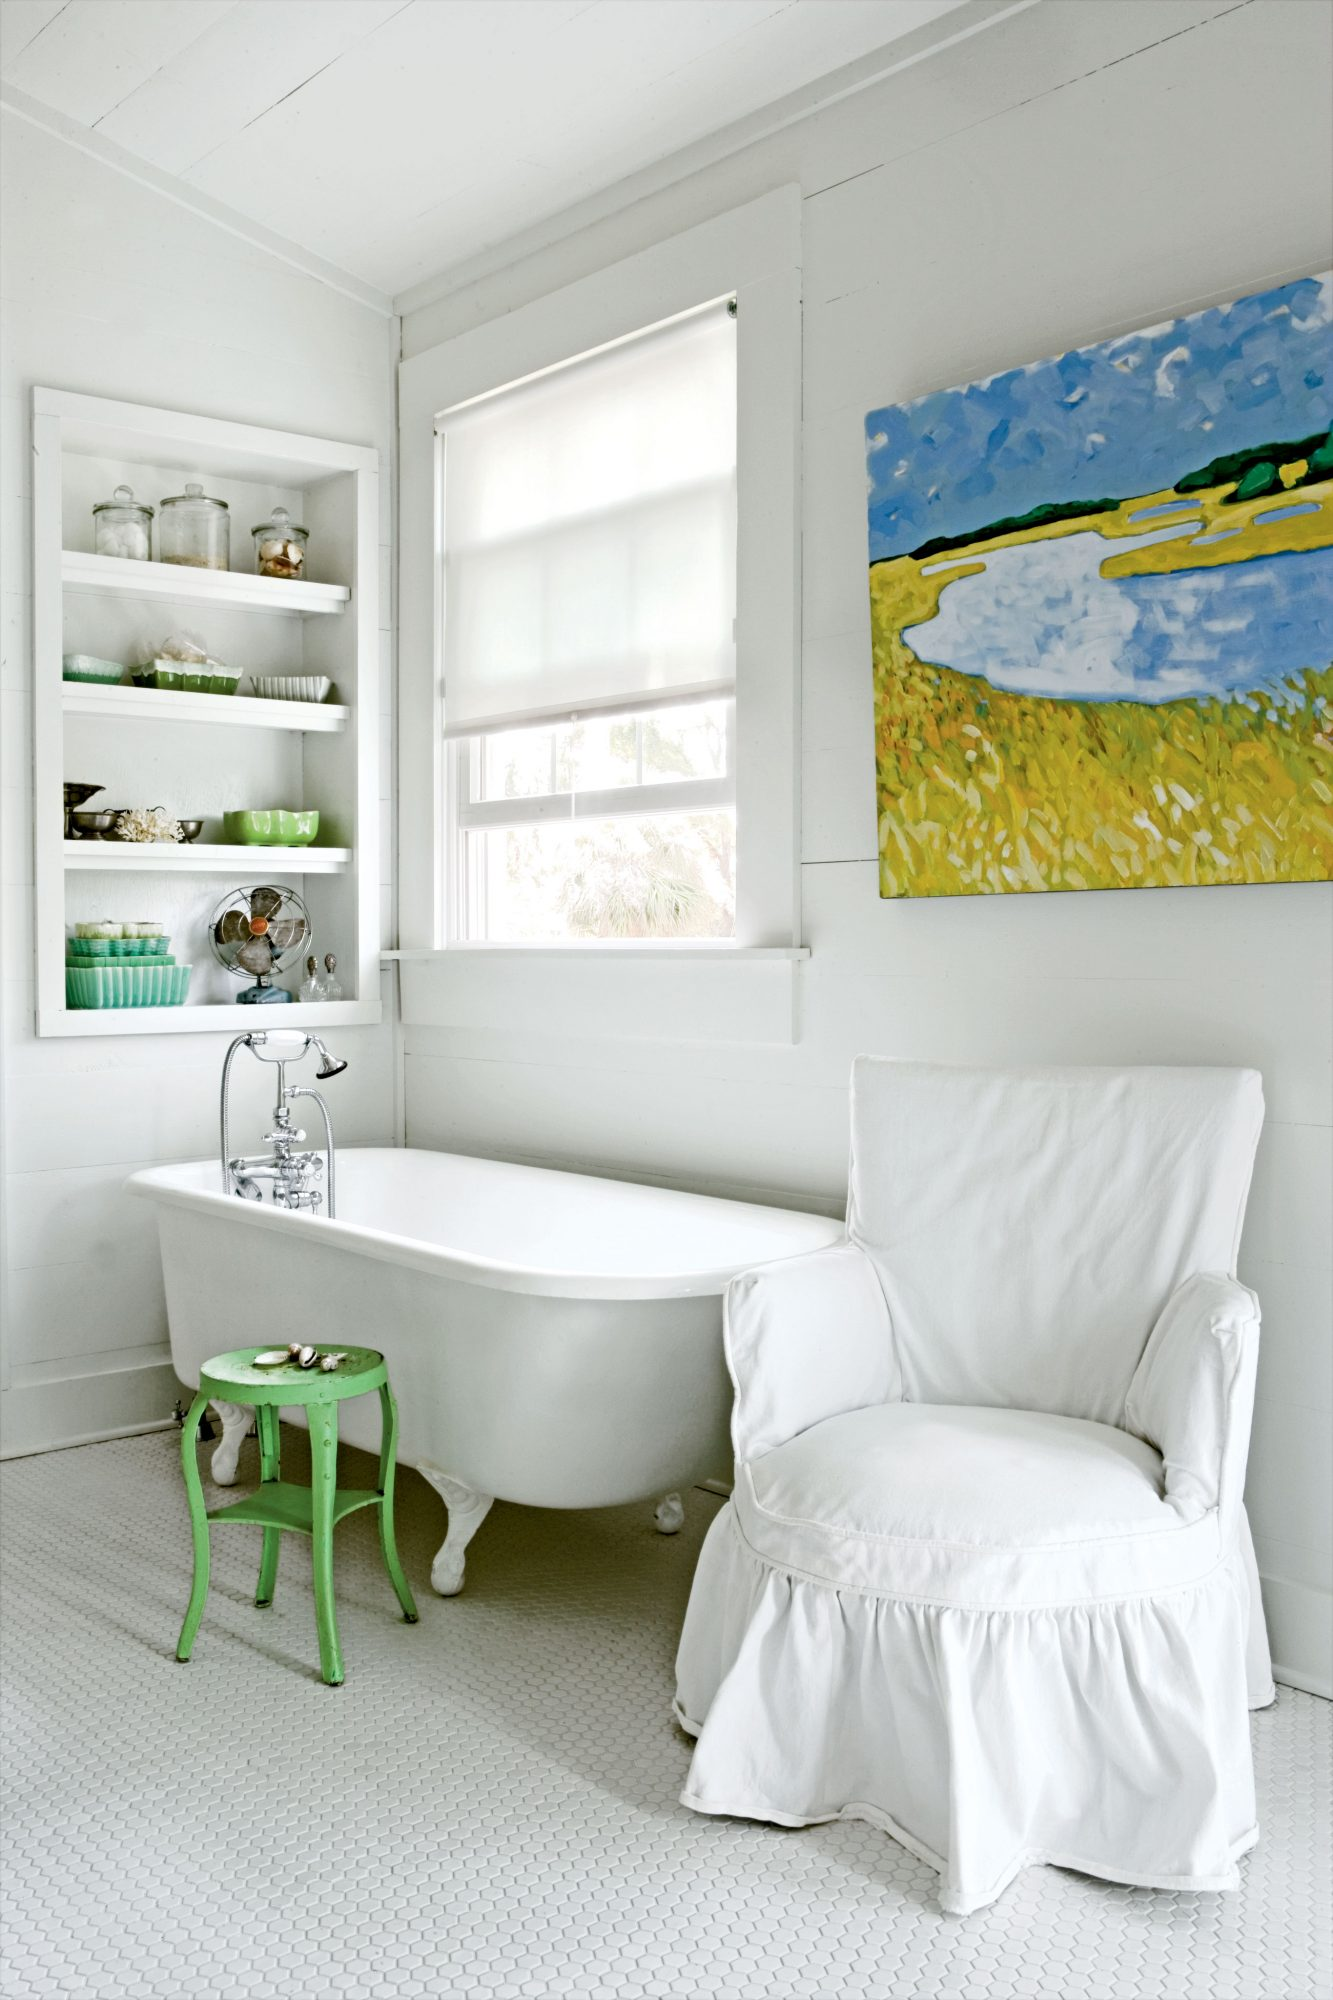 A blue and green water color painting is the focus of this simple white bathroom with a claw-footed tub, white slipcovered vanity seat, and small green stool